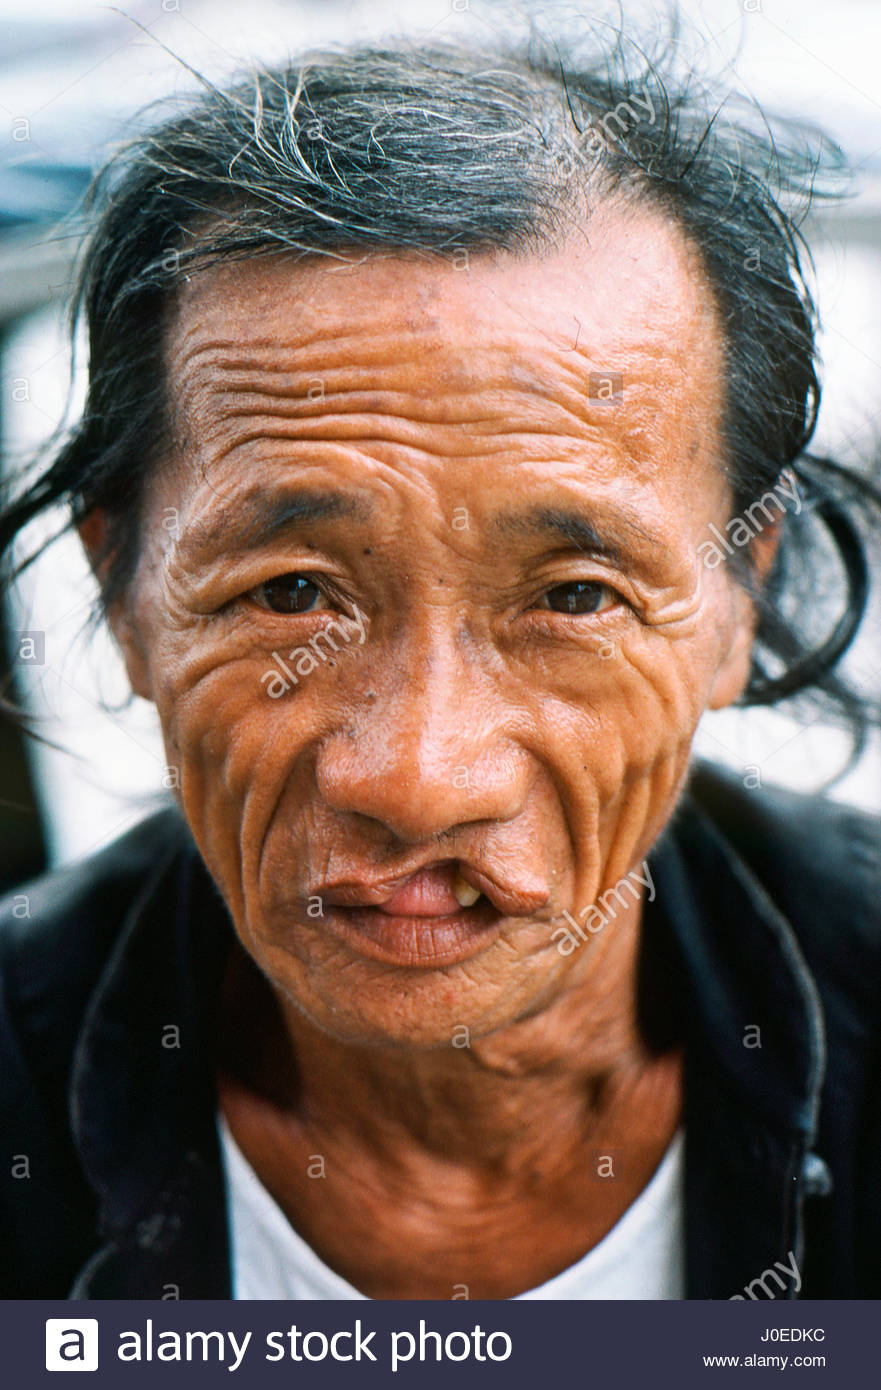 China circa 1983 People Person Man Men Chinese Ethnicity Senior Mature  Elderly Mouth Problem Hair Lip Maybe Peoples Republic Of China CHN Asia  1980s